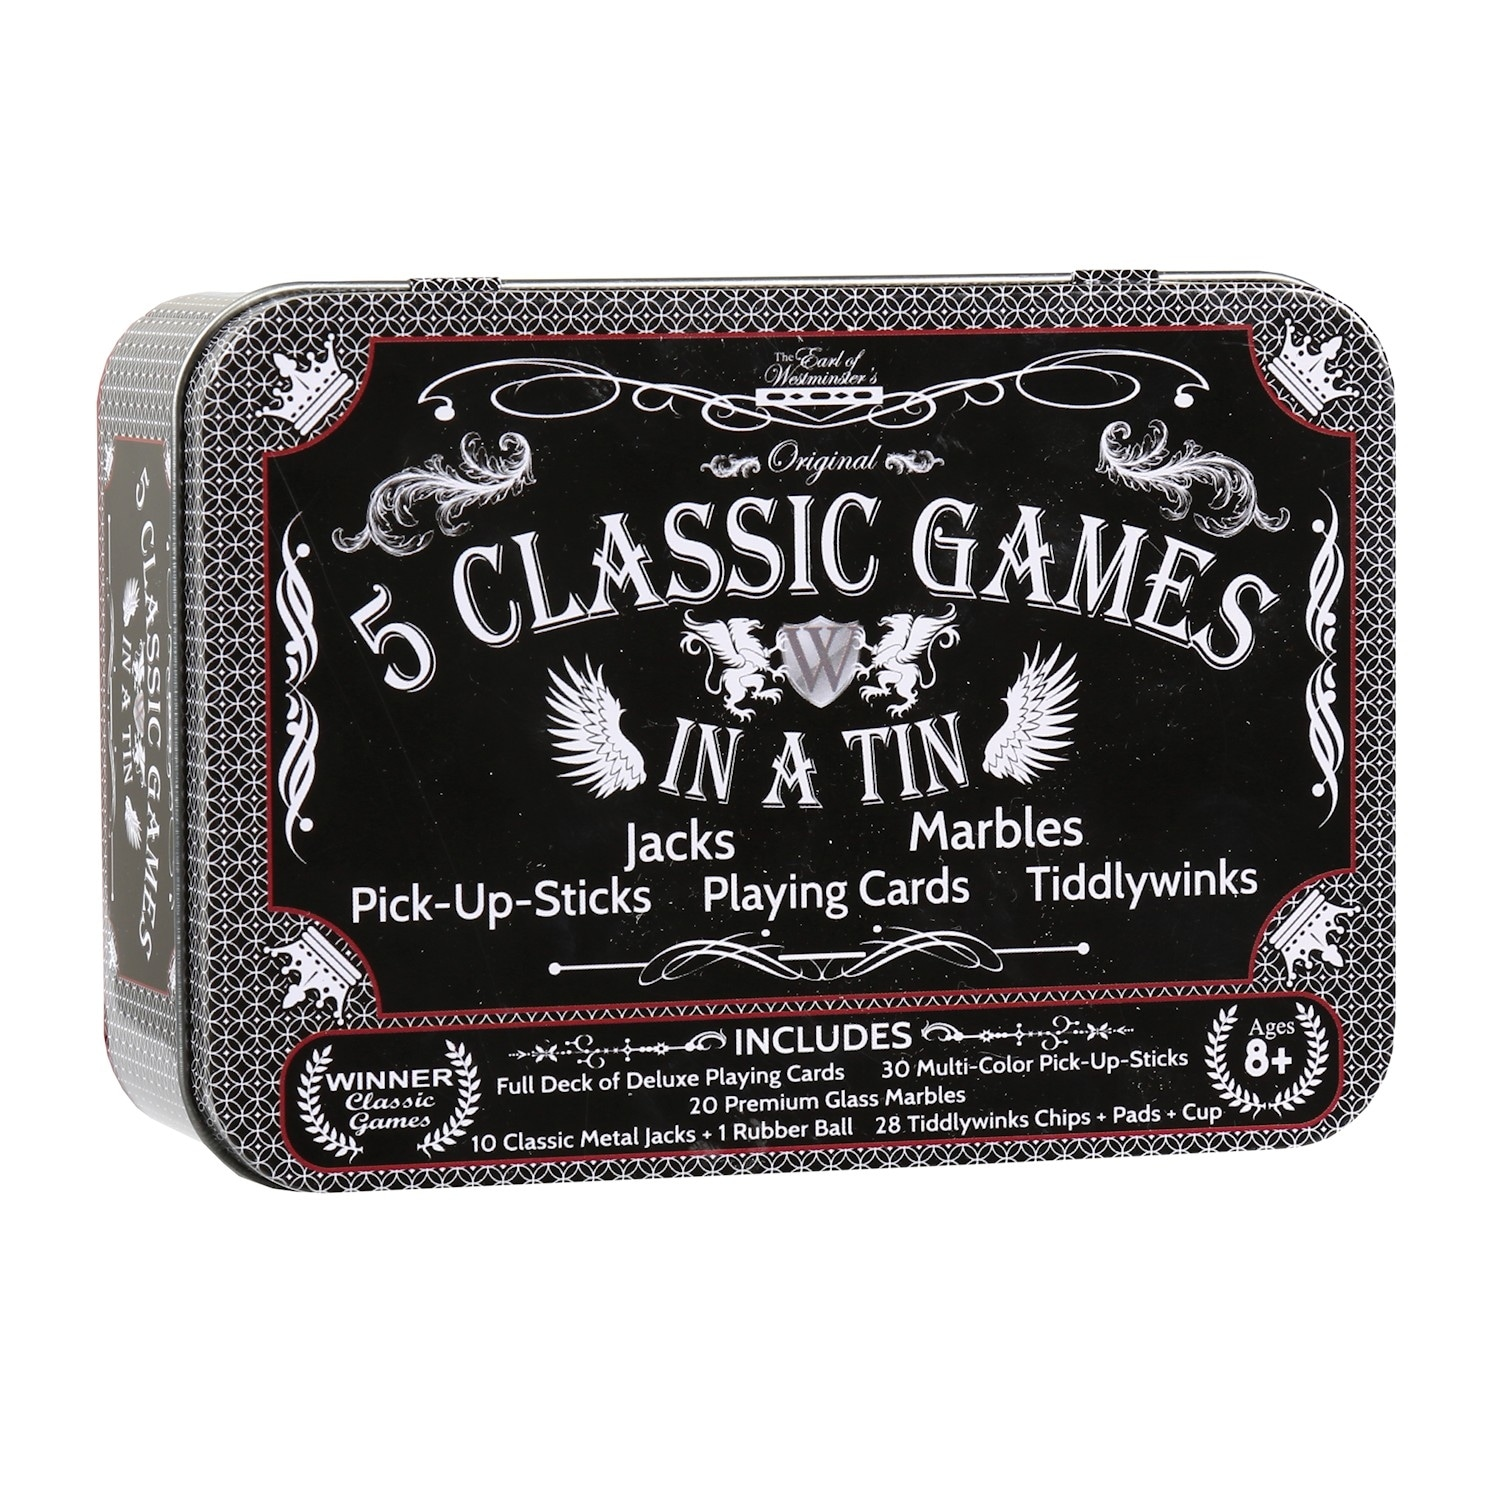 5 Classic Games In A Tin Marbles Jacks Tiddlywinks Pick Up Sticks Cards